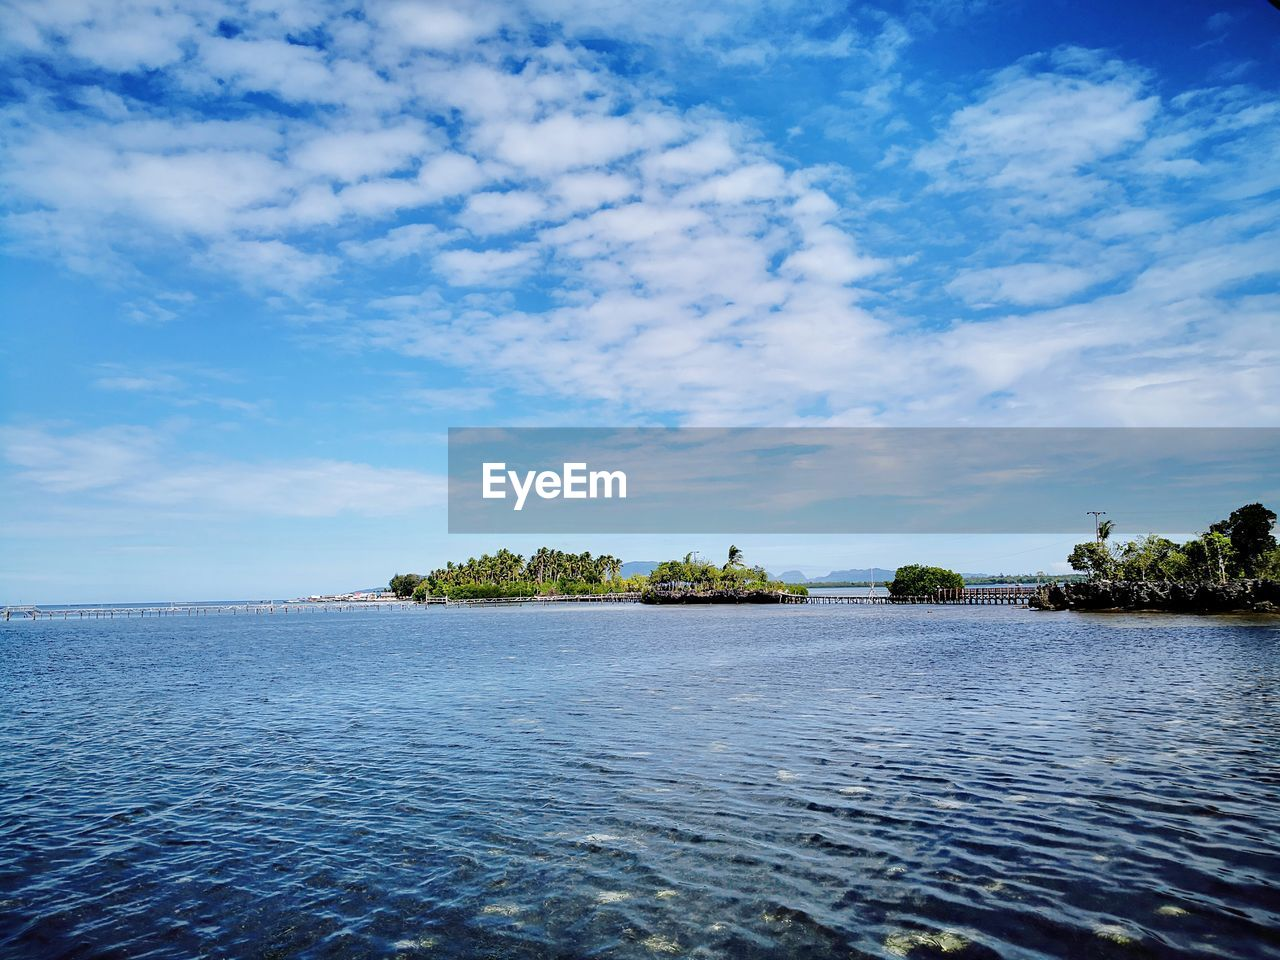 water, sky, cloud - sky, scenics - nature, beauty in nature, tranquility, tranquil scene, tree, waterfront, no people, nature, sea, blue, day, plant, idyllic, non-urban scene, outdoors